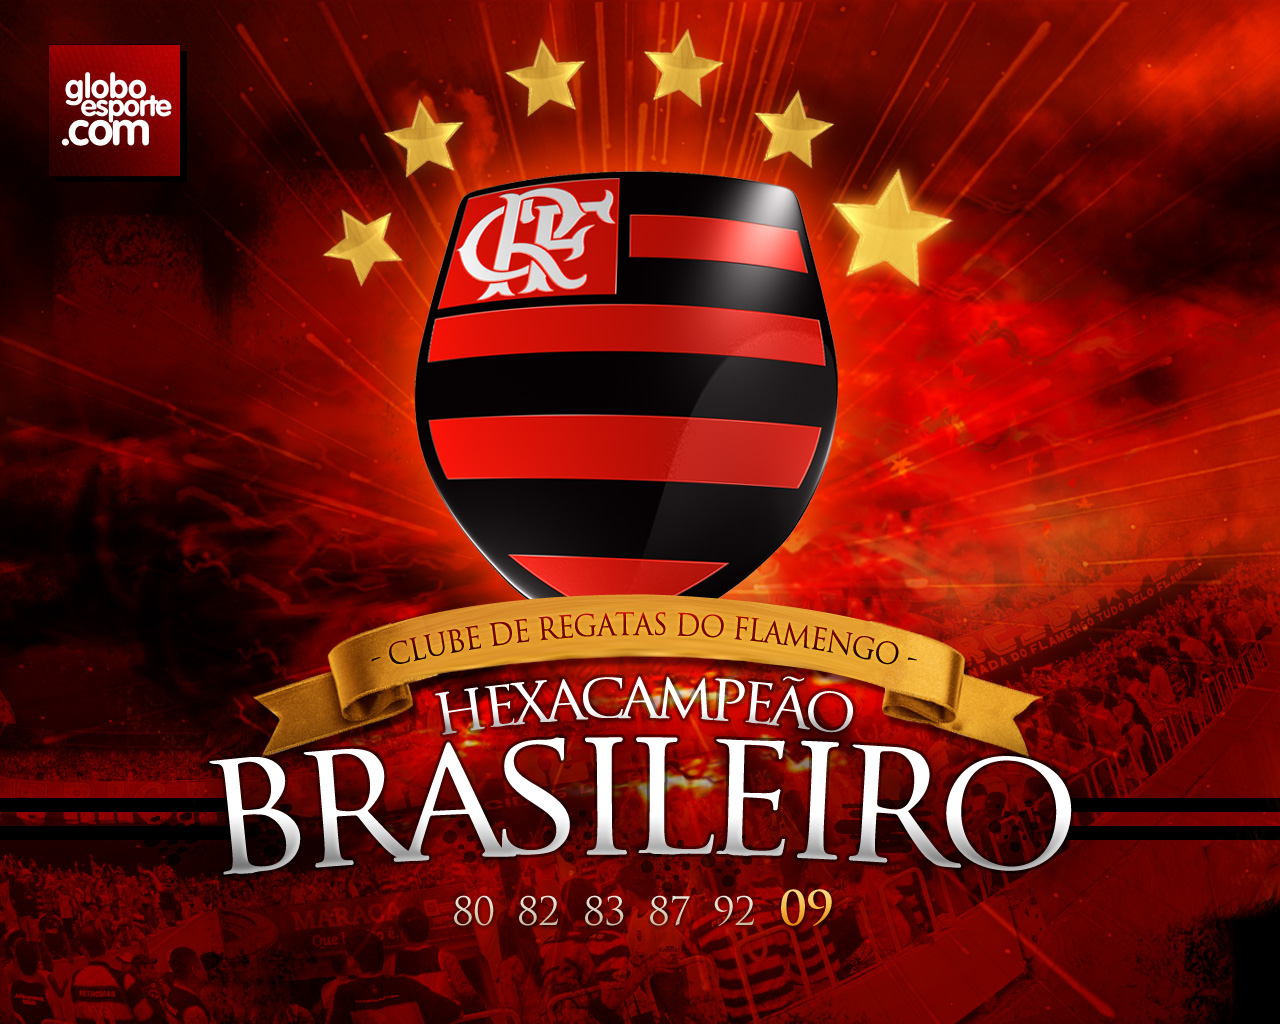 Do Flamengo  Flamengo Wallpaper  Wallpaper Do Flamengo  Flamengo